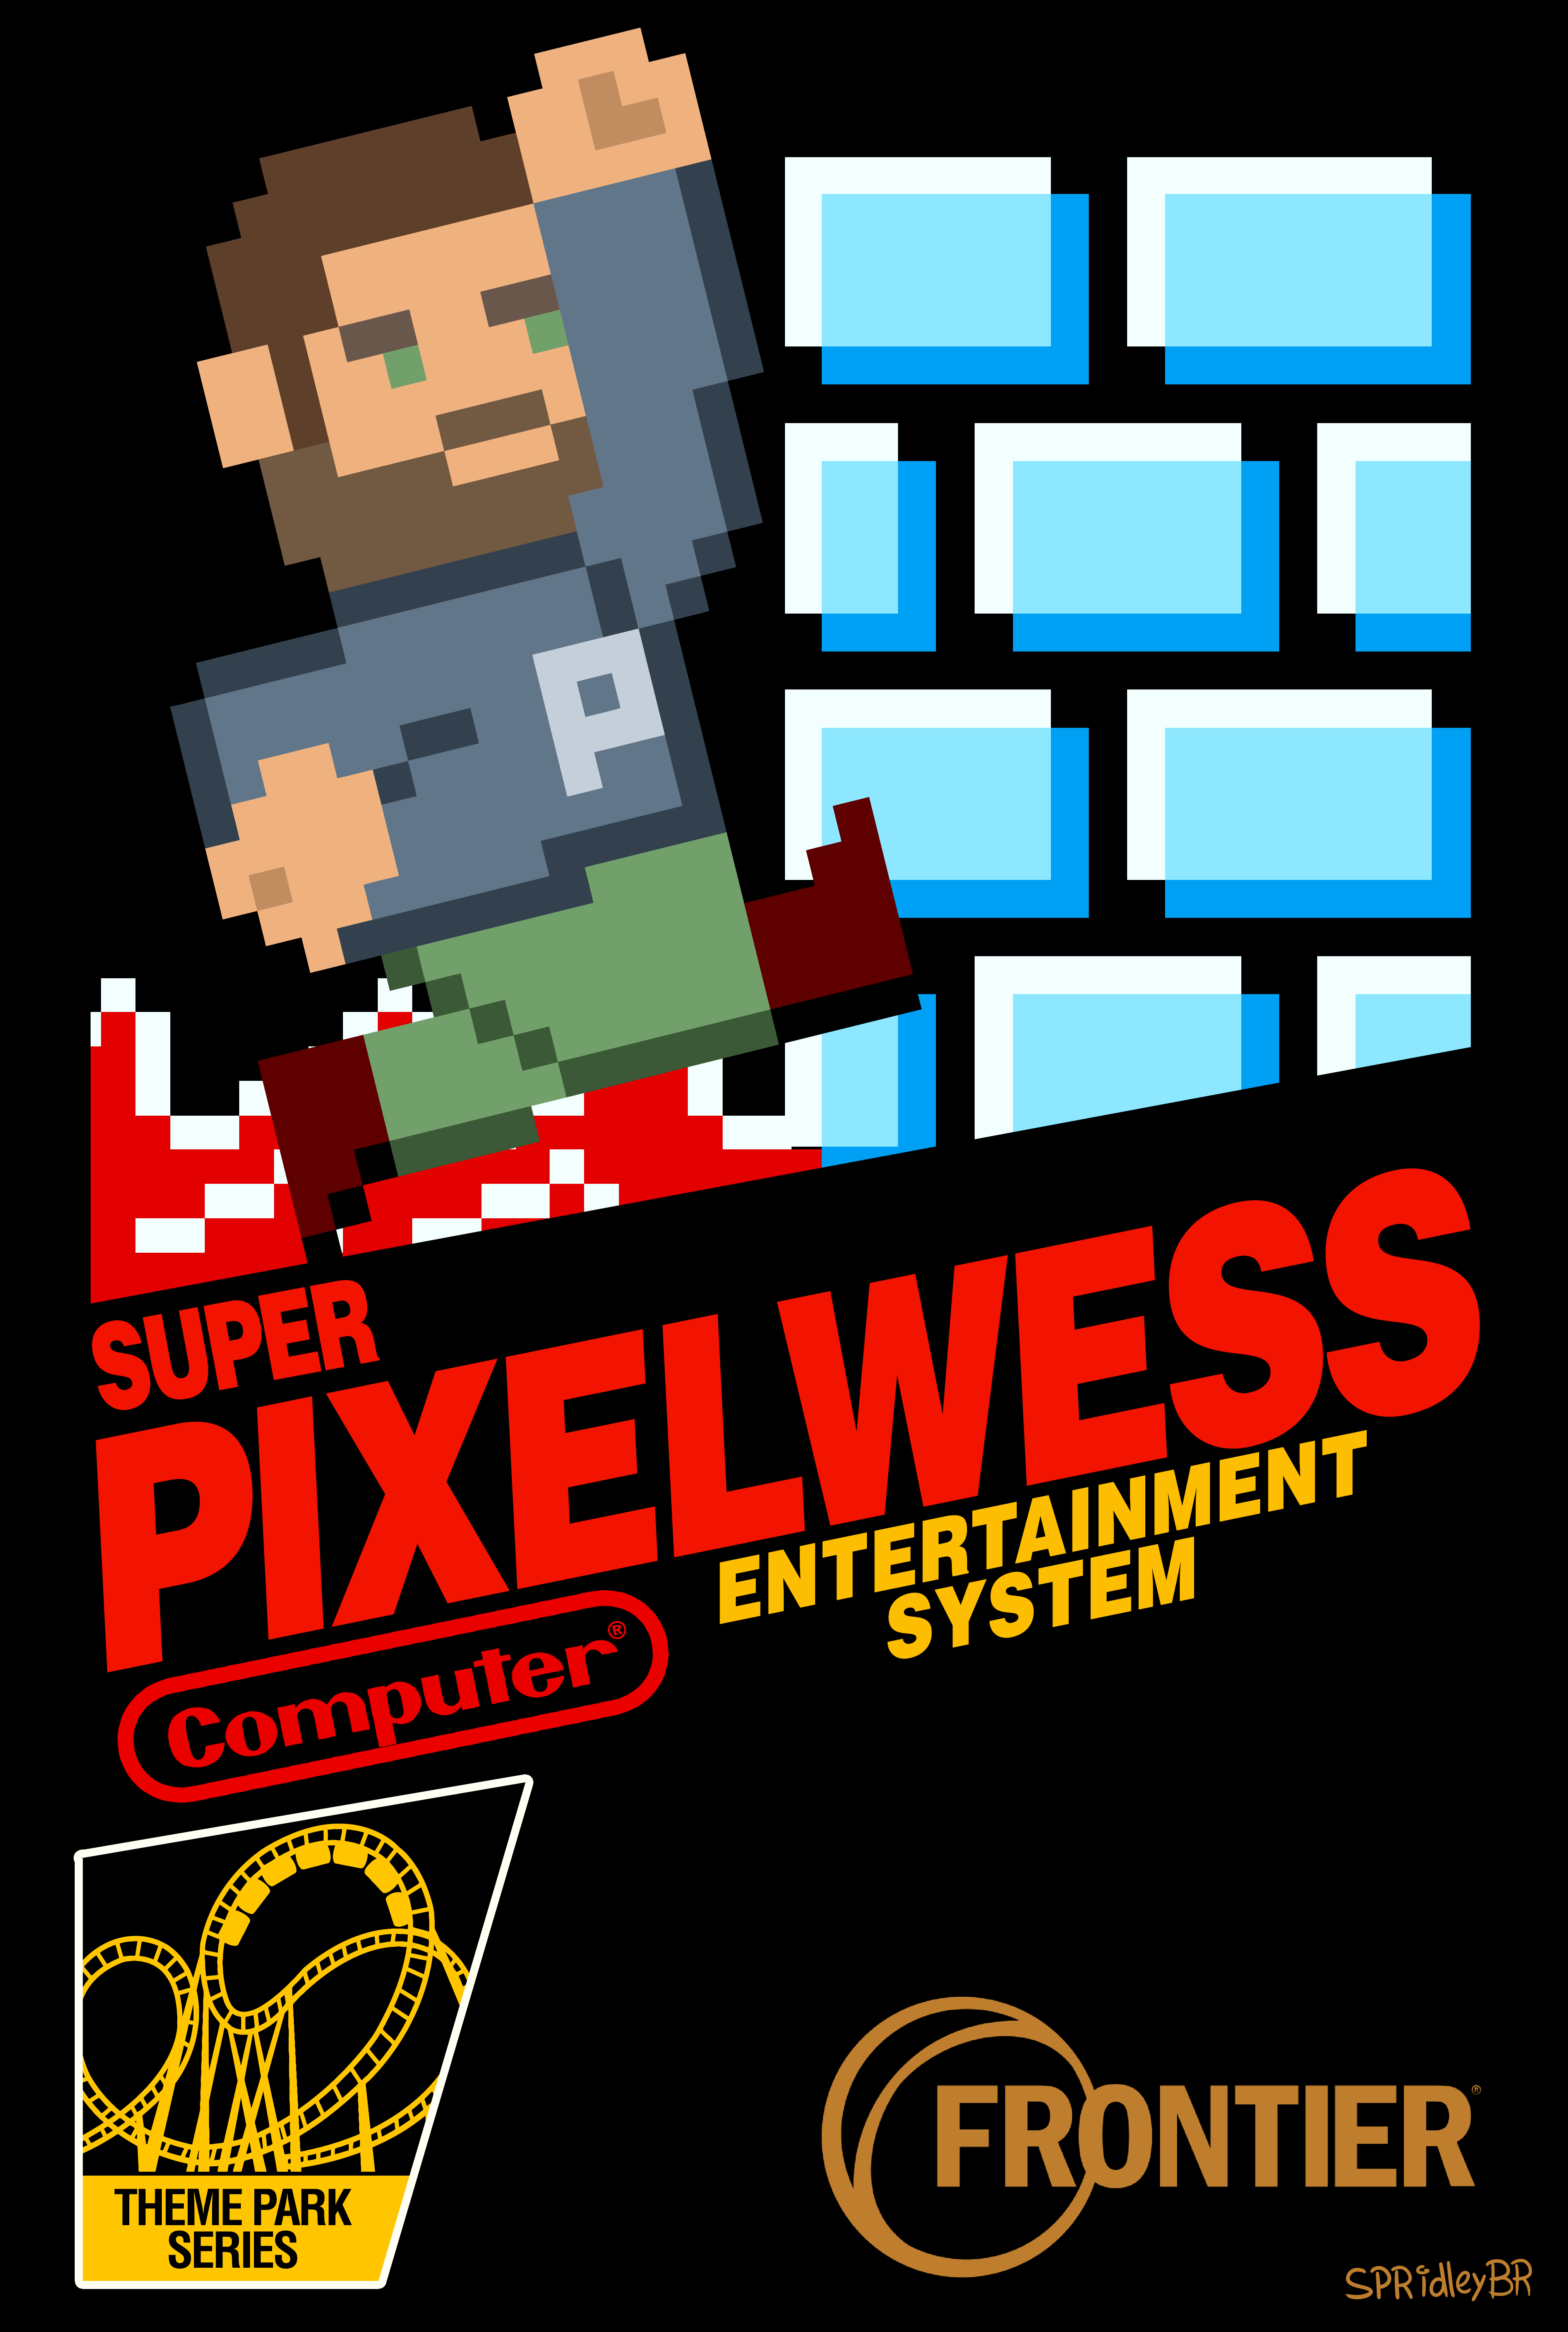 PixelWess89 Poster